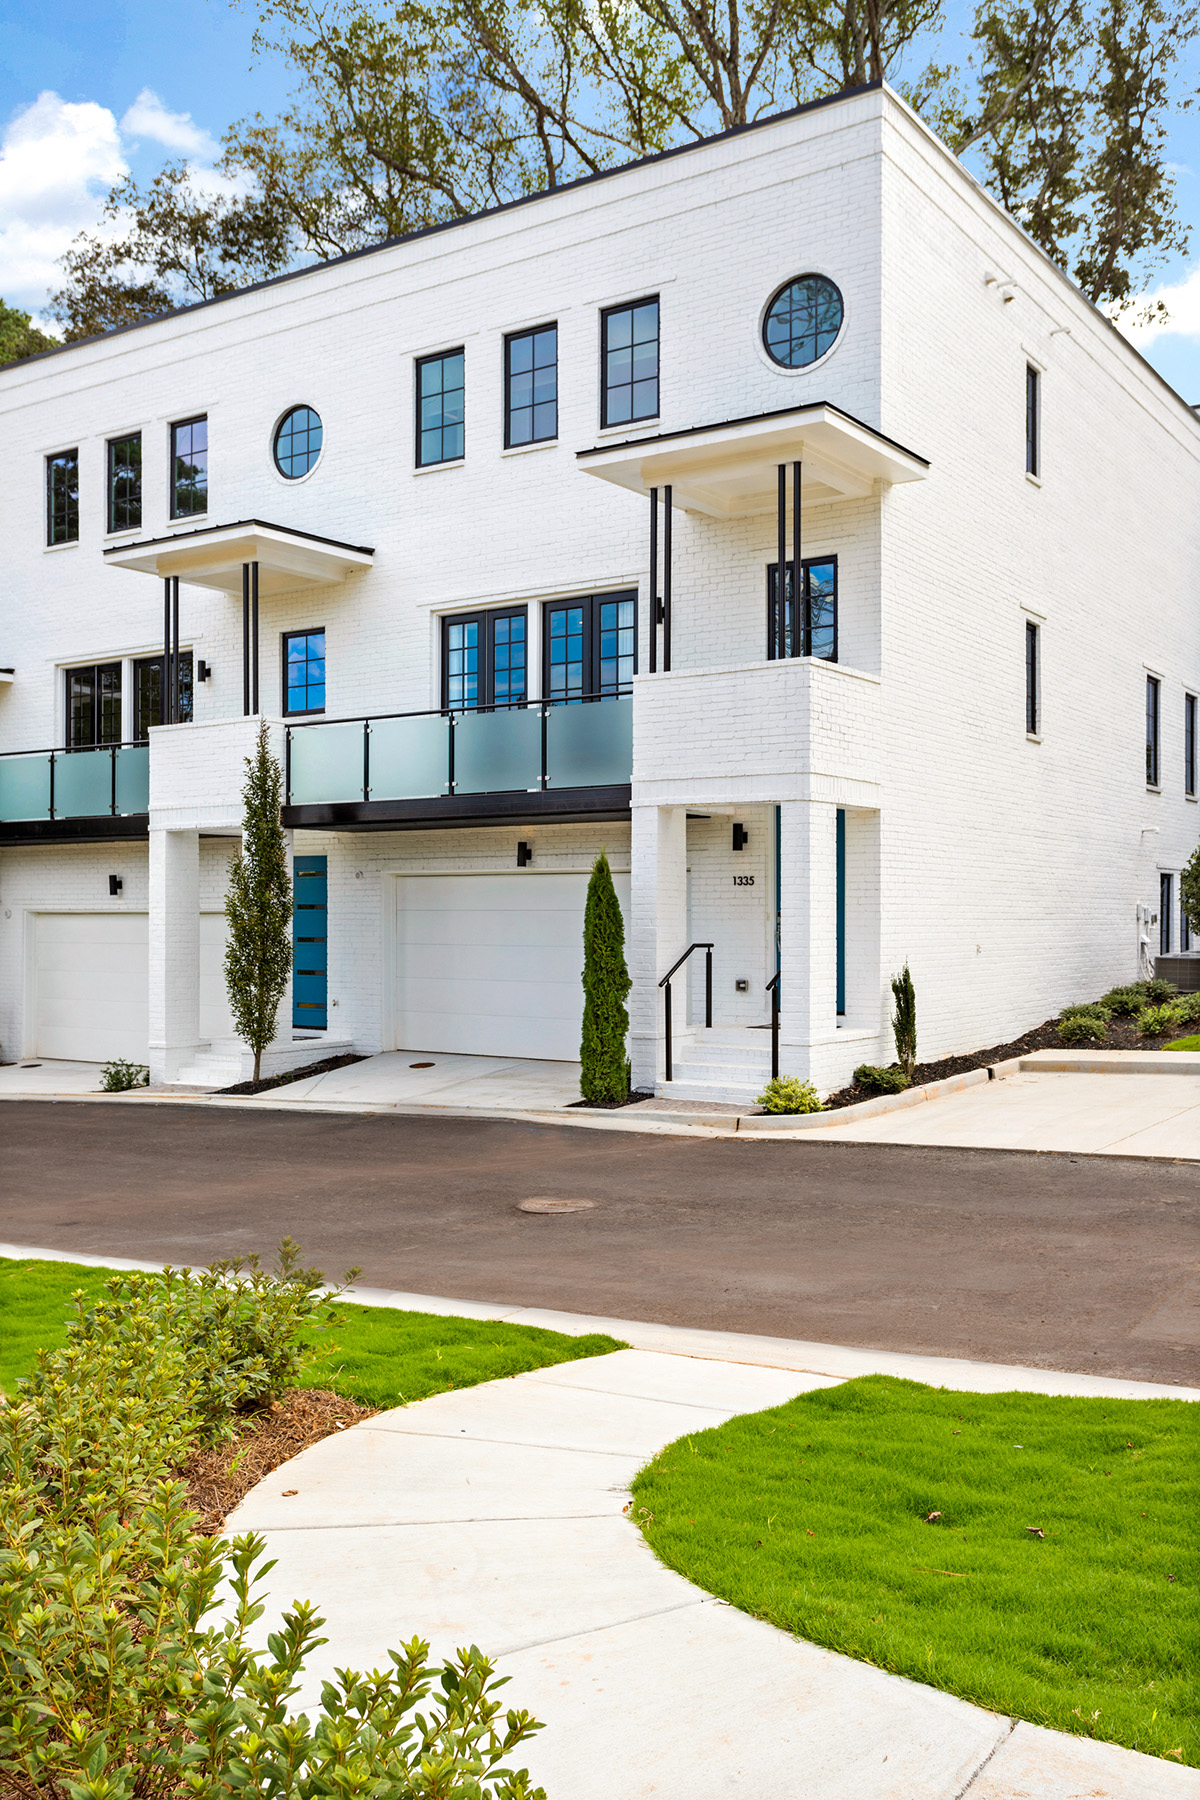 Townhouse for Sale at Art Moderne Inspired Living In A Contemporary Setting 1517 Briarcliff Road 7 Atlanta, Georgia 30306 United States